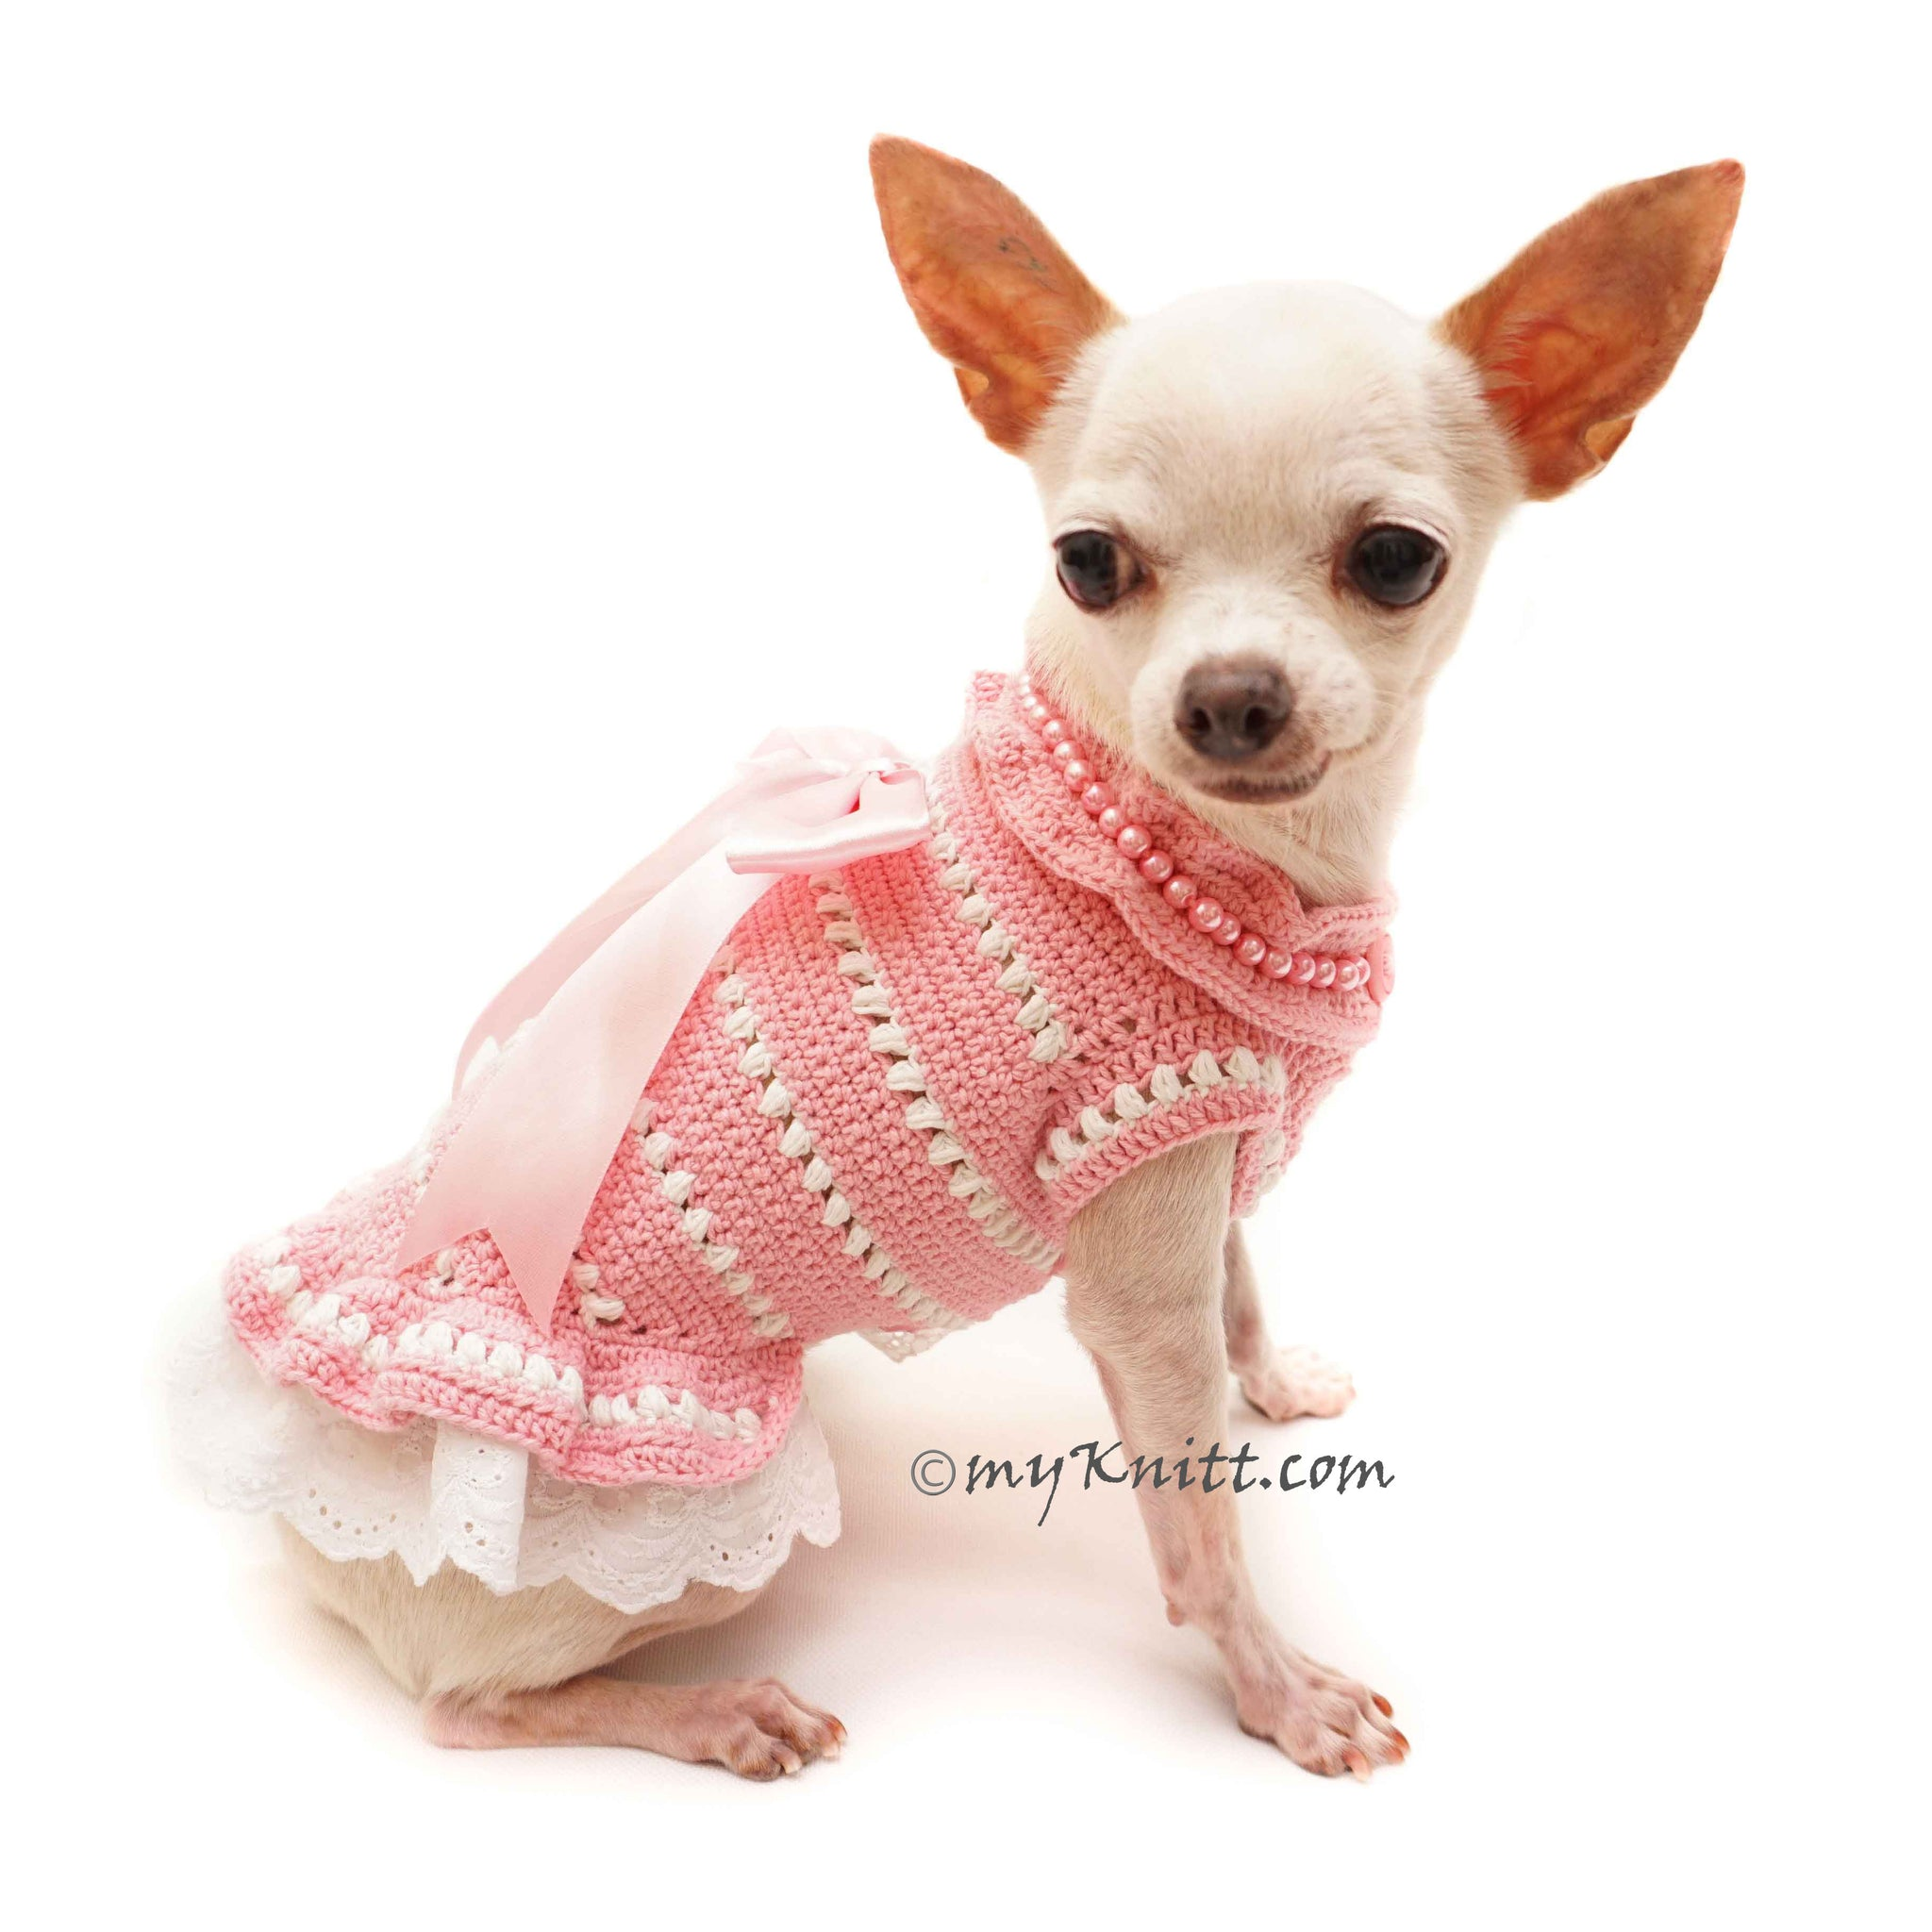 d173dd298eef Deep Pink Dog Costume Party, Dog Dresses with Lace and Pearls DF107